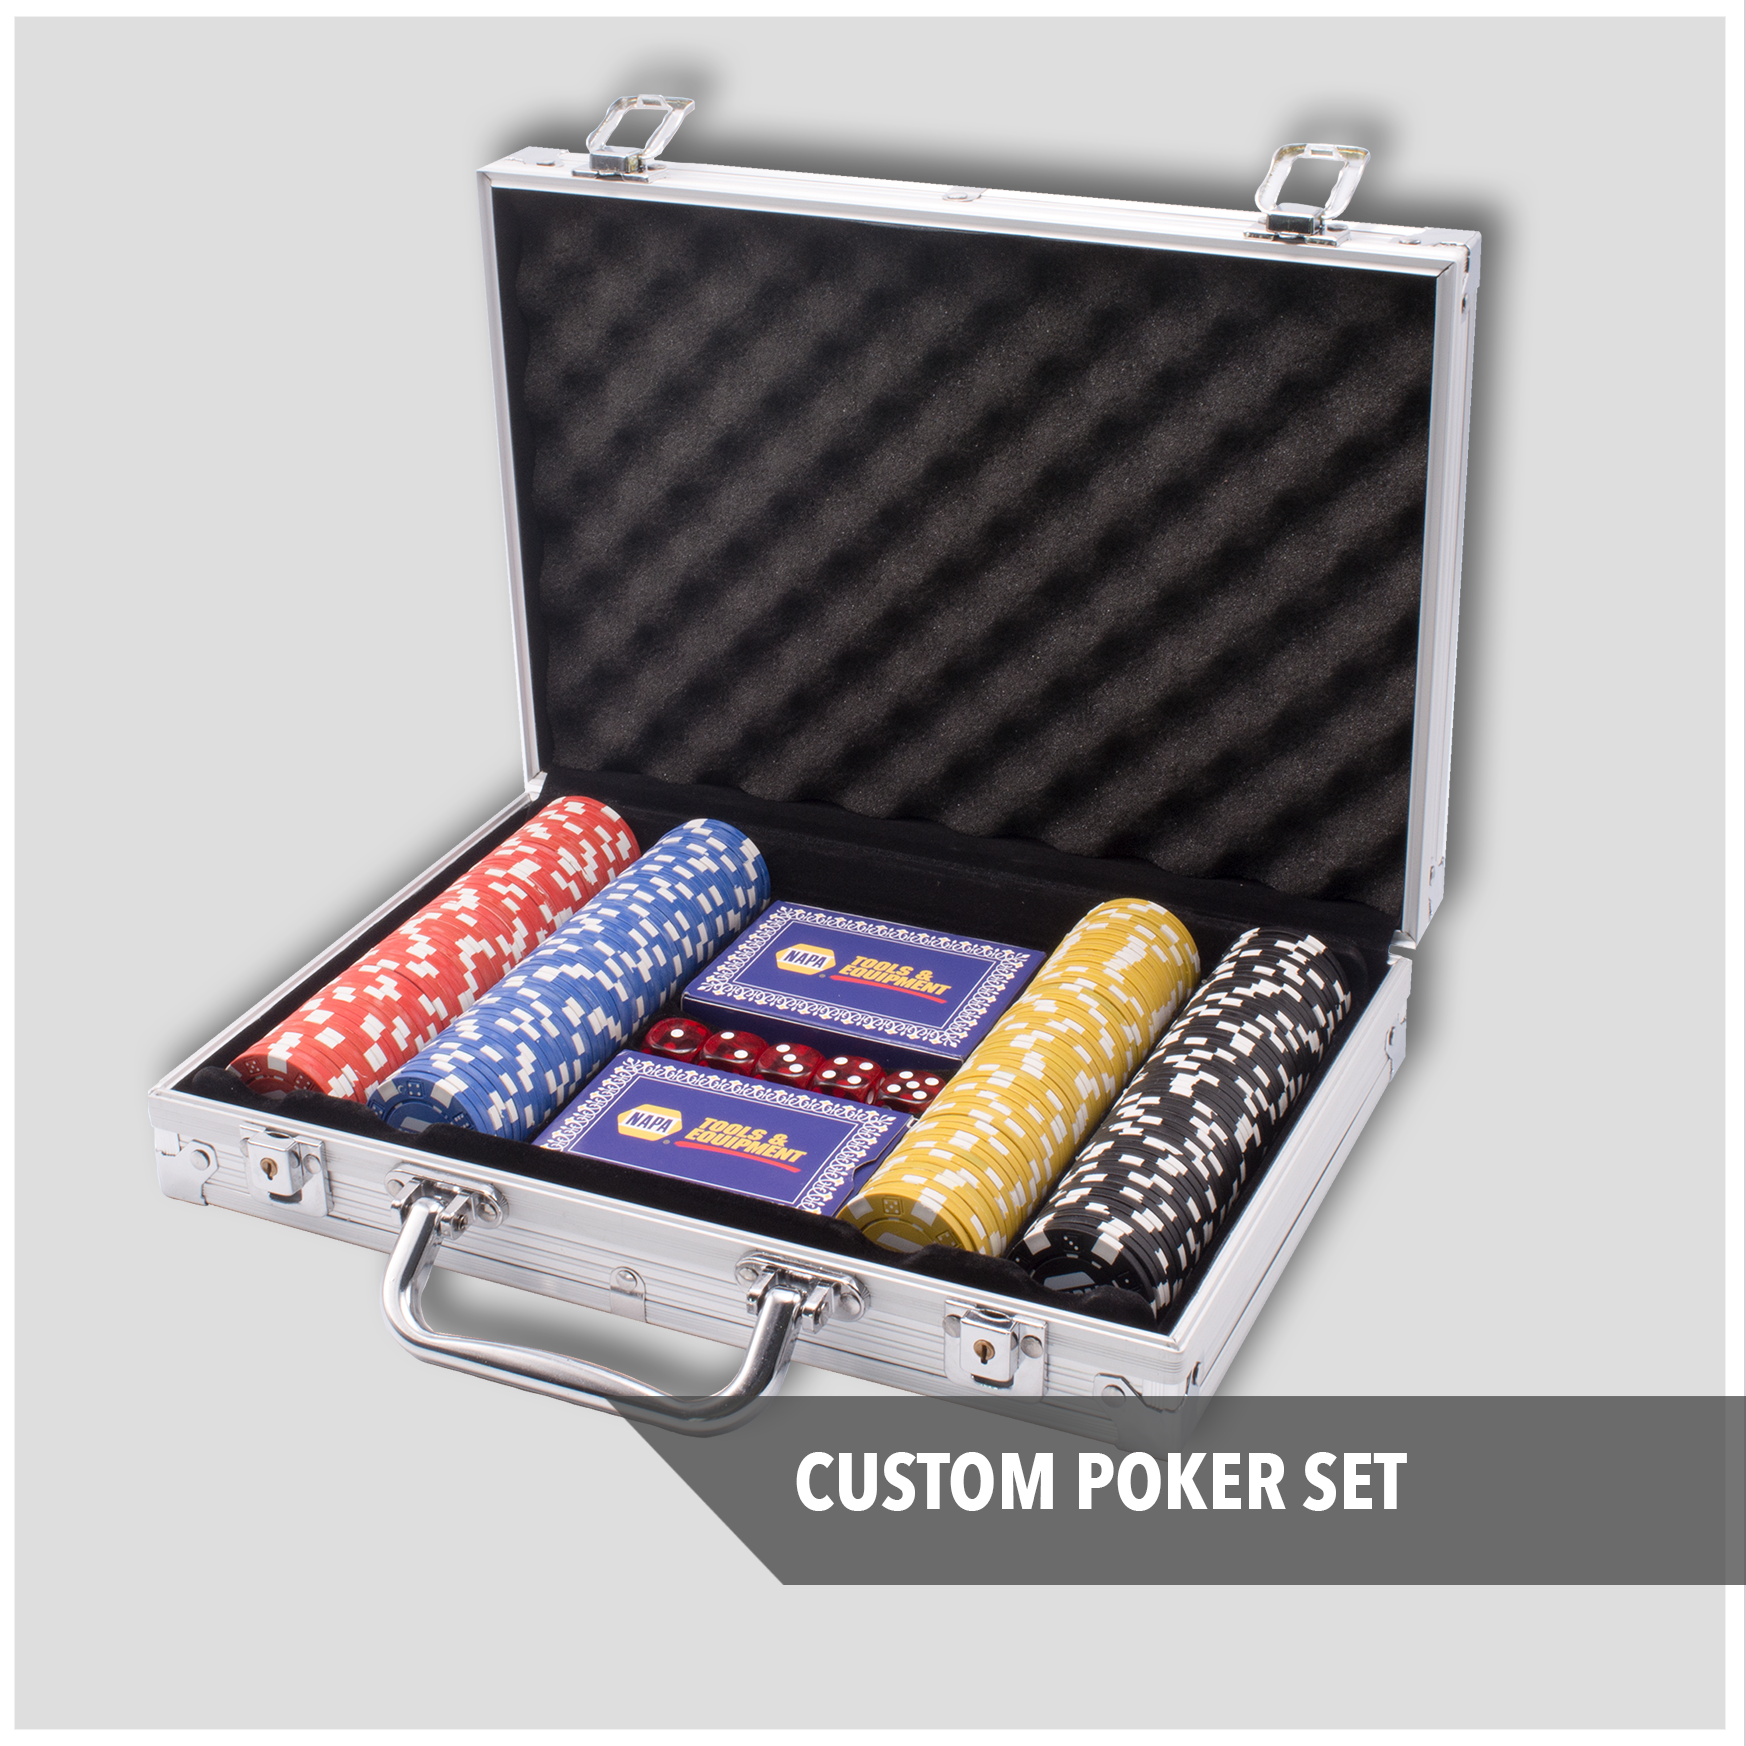 CP_FEATURED_POKERSET.png